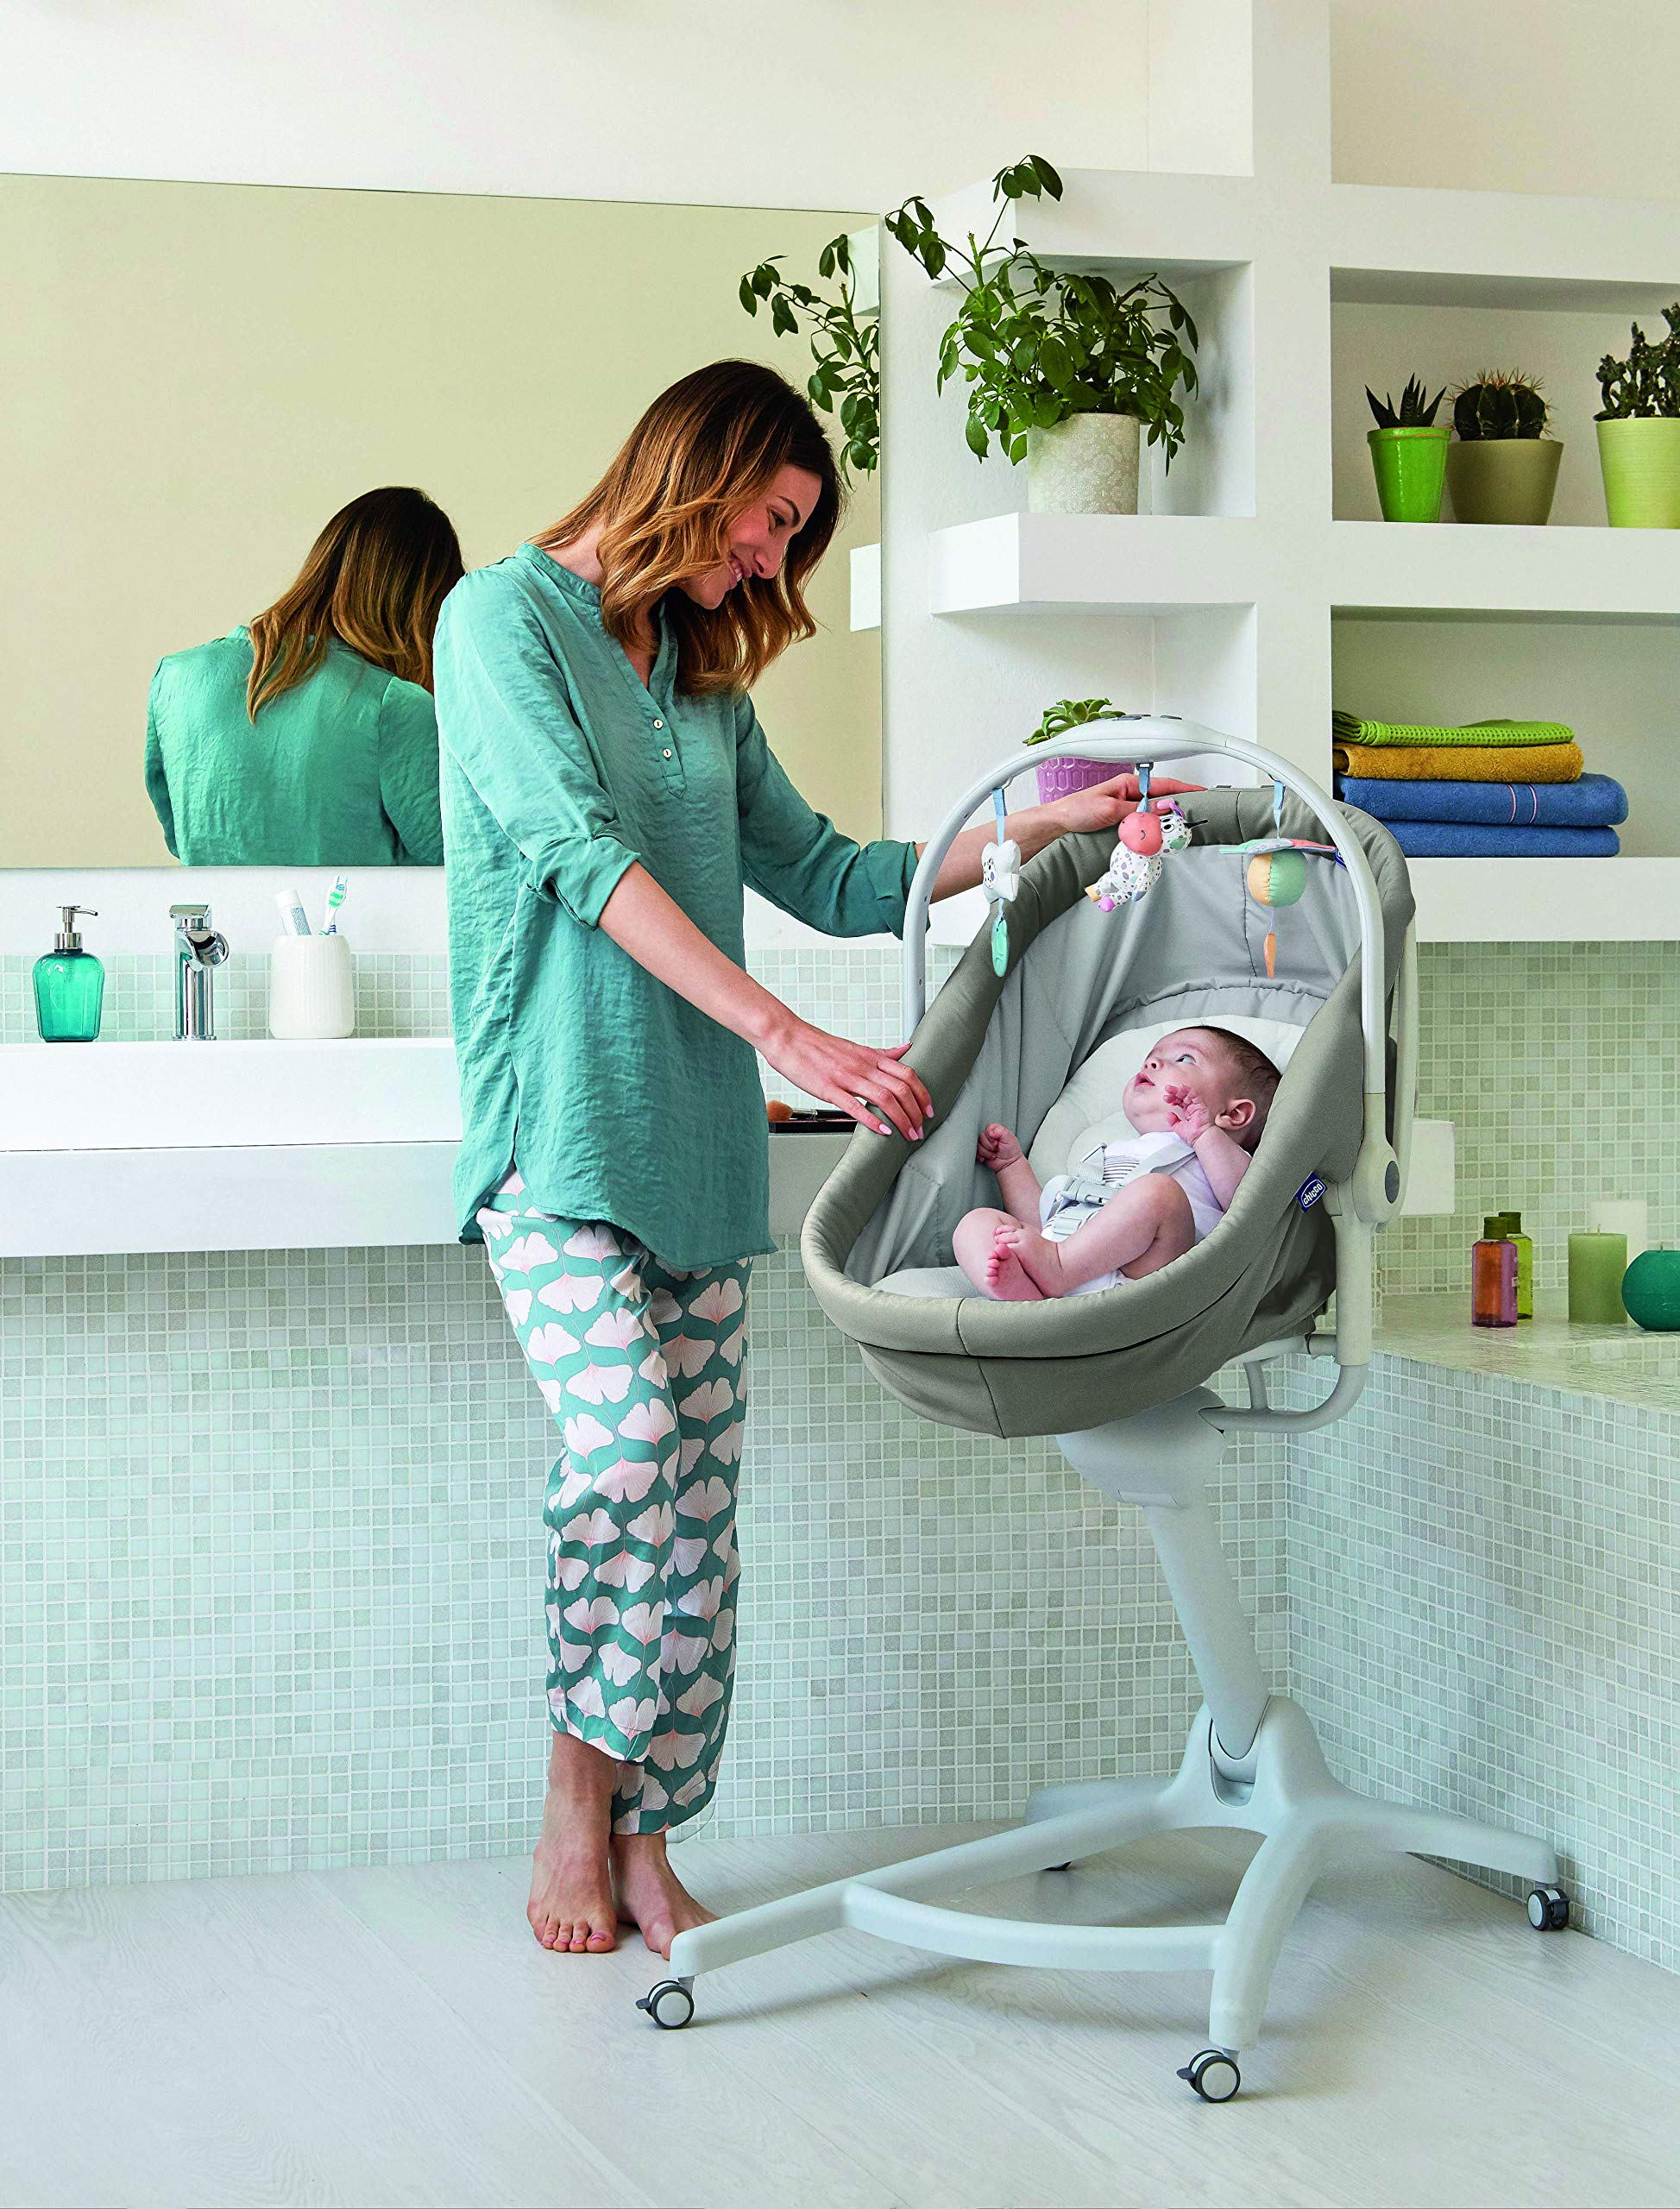 Chicco Baby Hug 4 in 1, Legend  It covers all your and your baby's needs: it is a comfy crib, a recliner from birth, a convenient highchair and finally your child's first chair from 6 months. Adjustable heights and backrest and 4 wheels Removable reducer to make the recliner suitable from birth 7